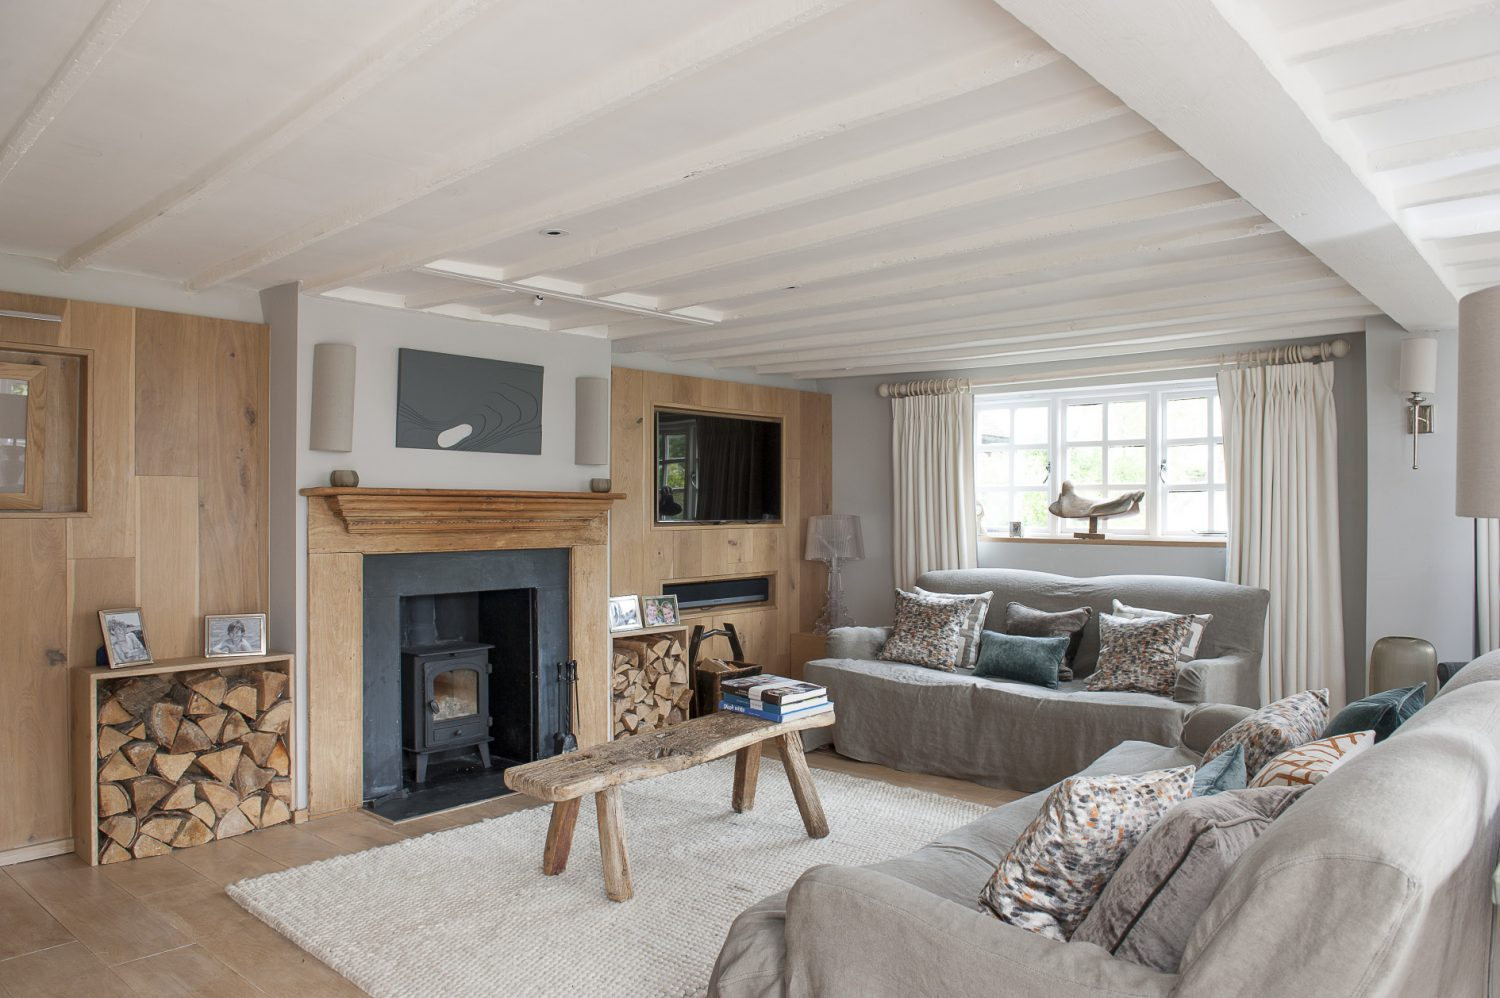 The contemporary wood panelling throughout Martine and Andrew's home gives it an undeniably cosy – and high class – chalet feel